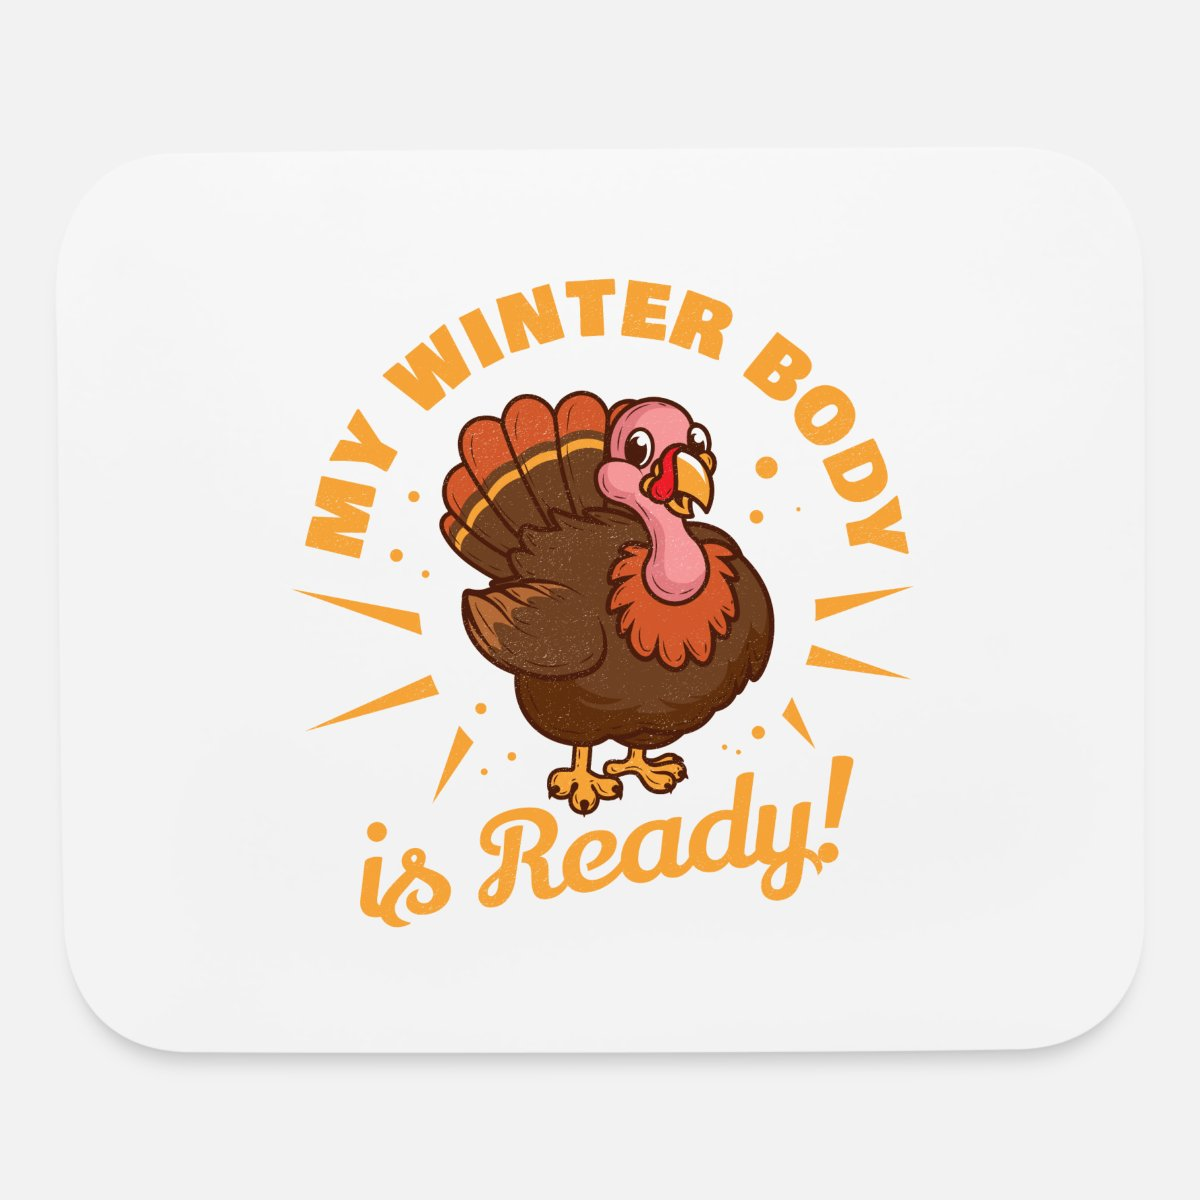 Funny Thanksgiving Turkey Meme My Winter Body Mouse Pad Spreadshirt